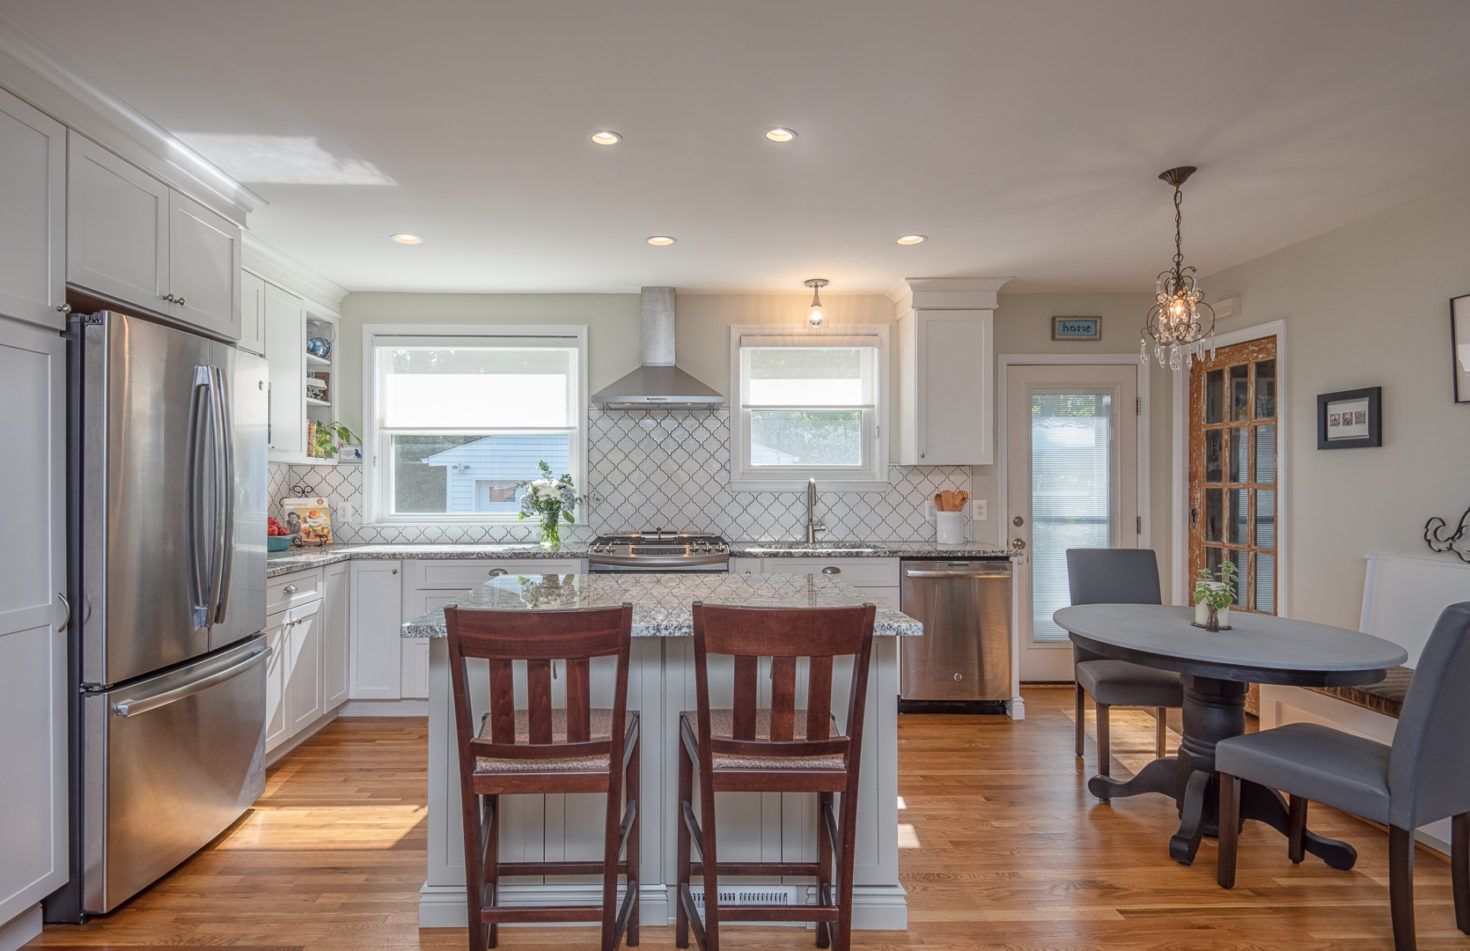 example of an $80,000 kitchen remodel in Fairfax, Virginia